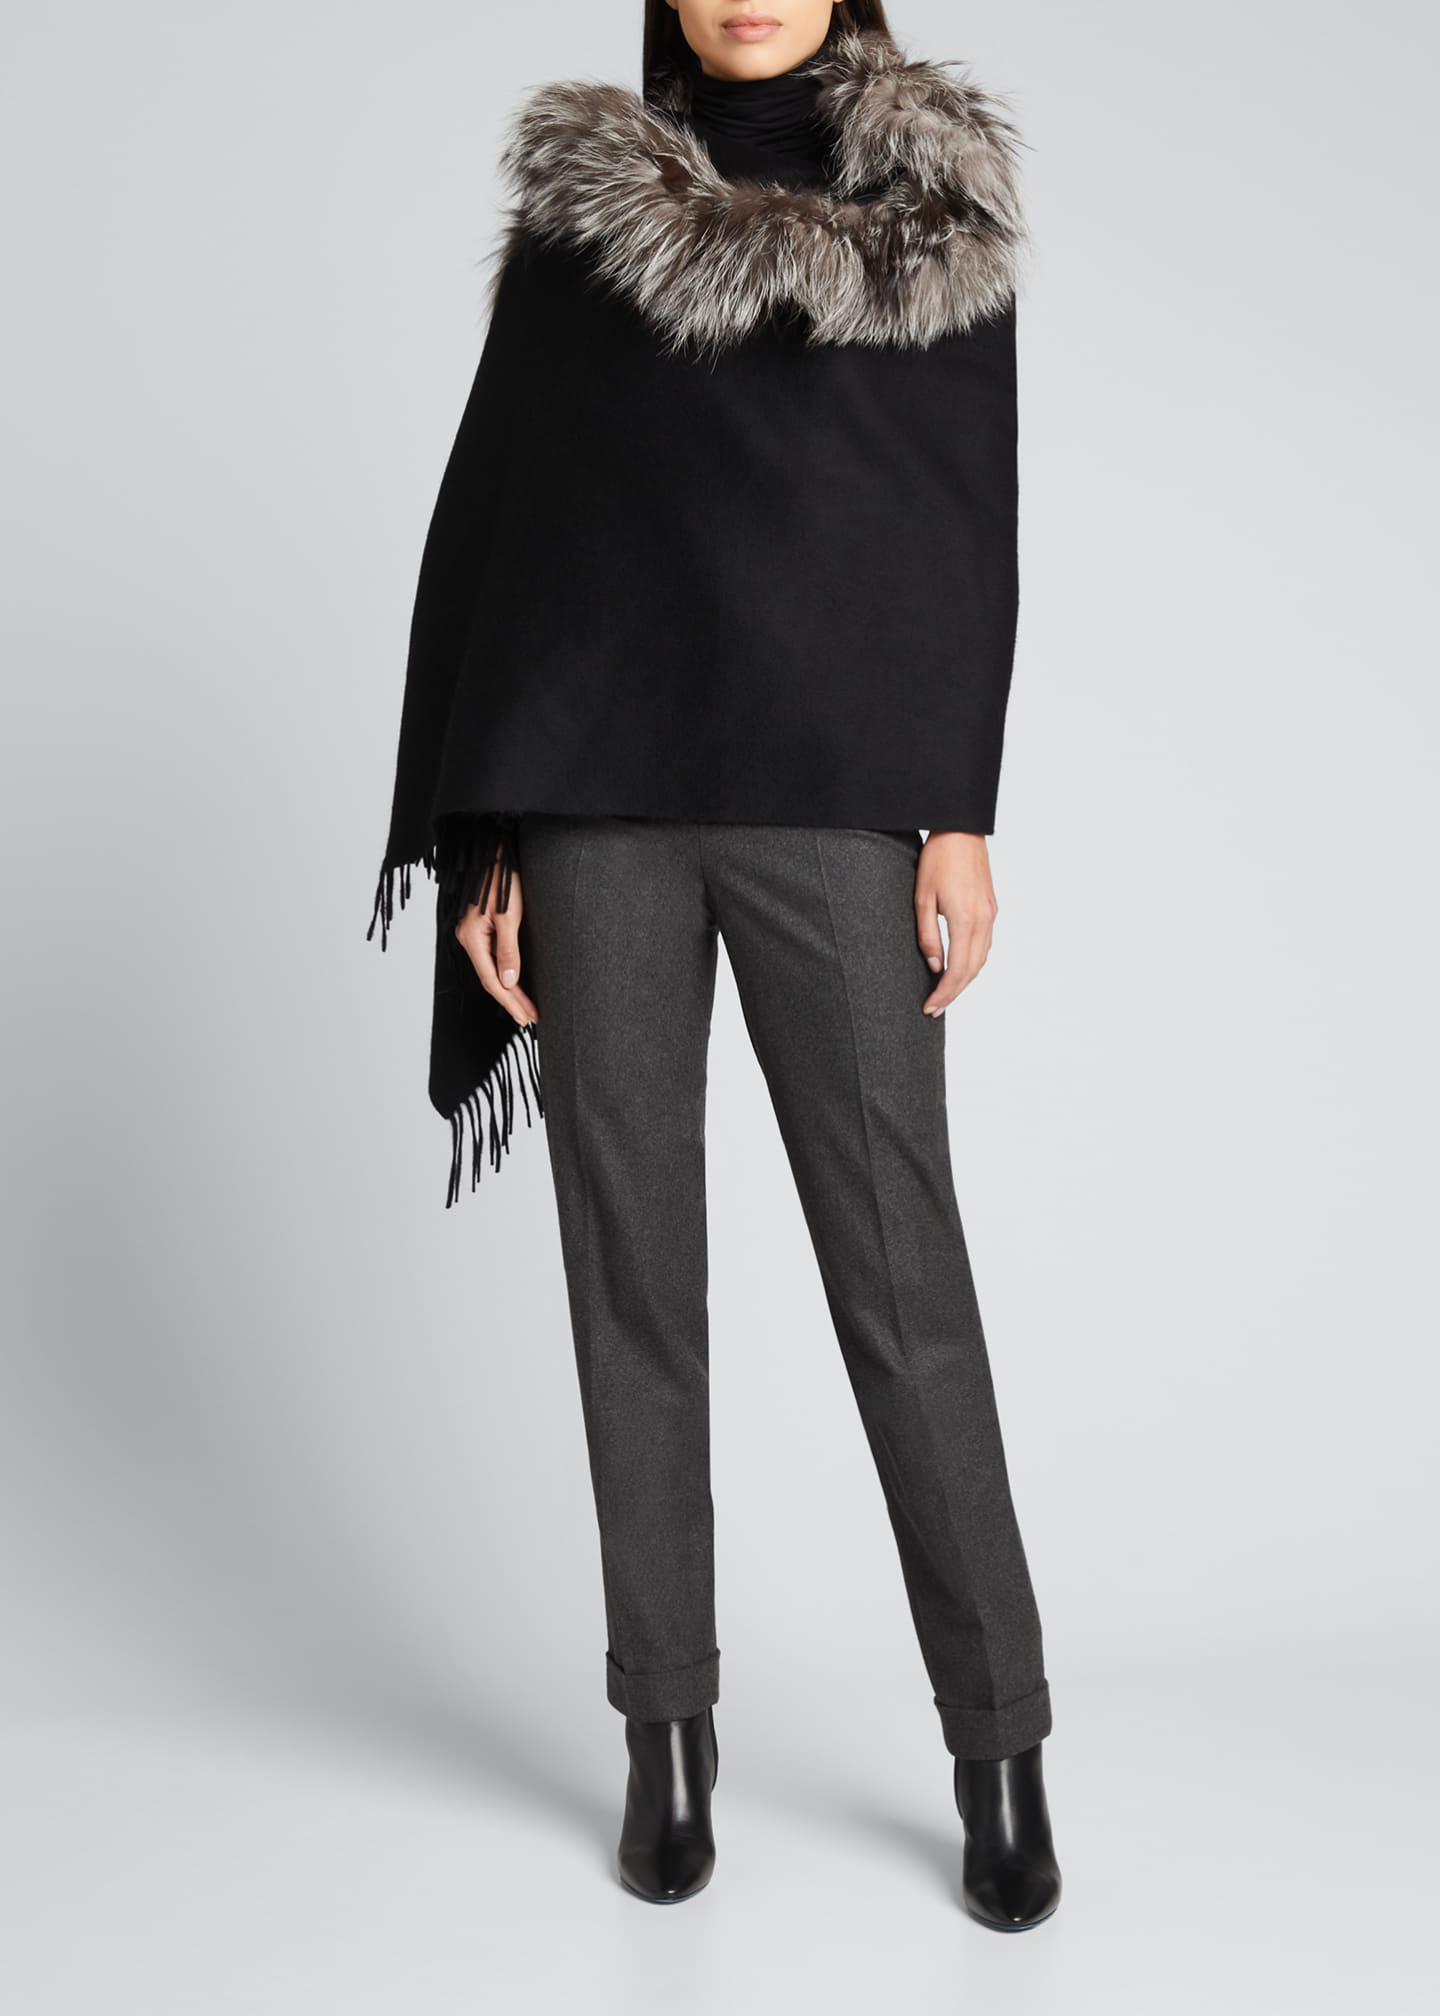 Image 3 of 3: Cashmere Stole With Silver Fox Fur Ruffle